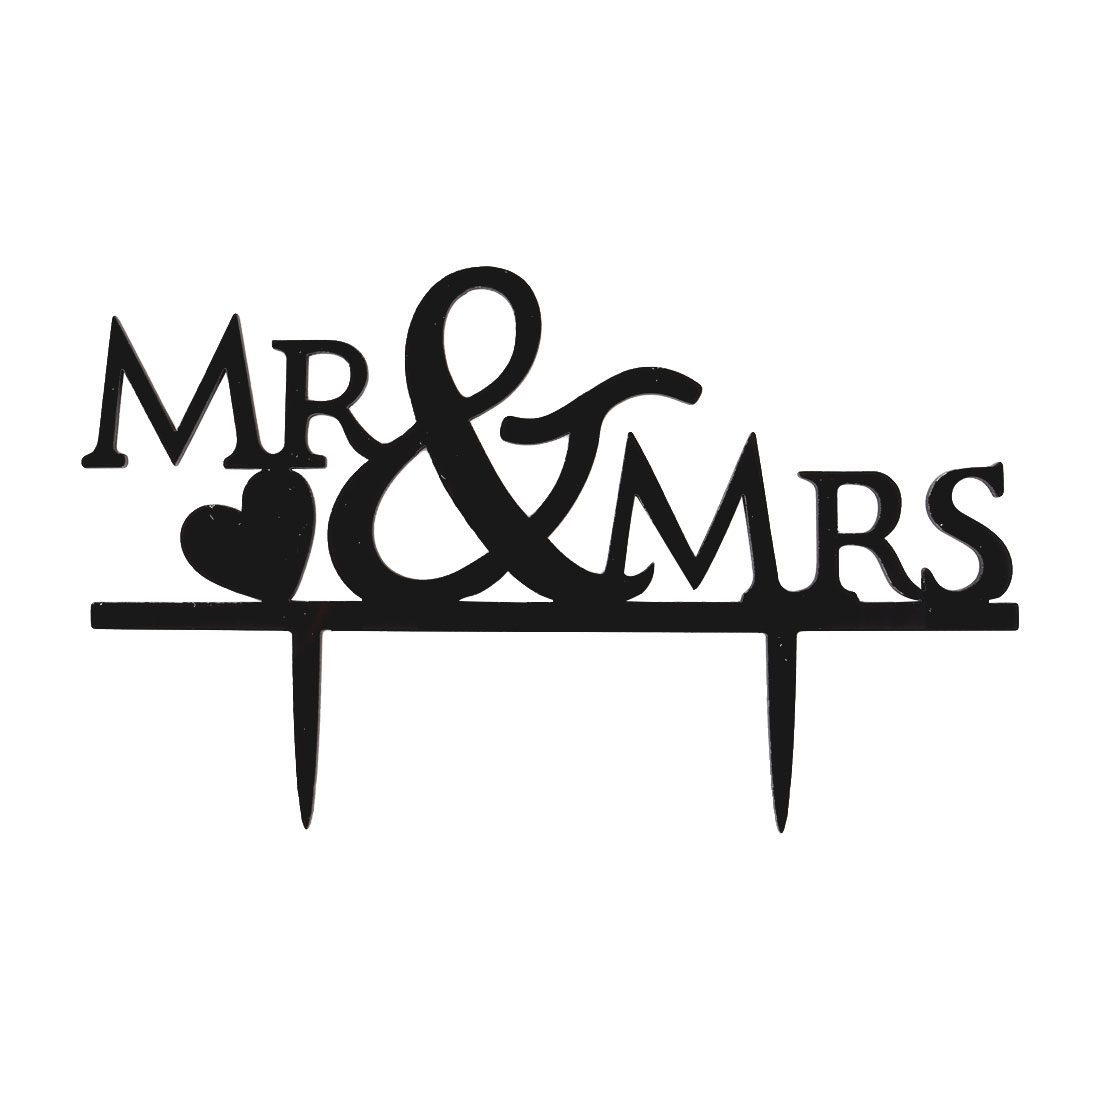 Wedding Birthday Acrylic Handicraft MR and MRS Decor Cupcake Cake Topper Black